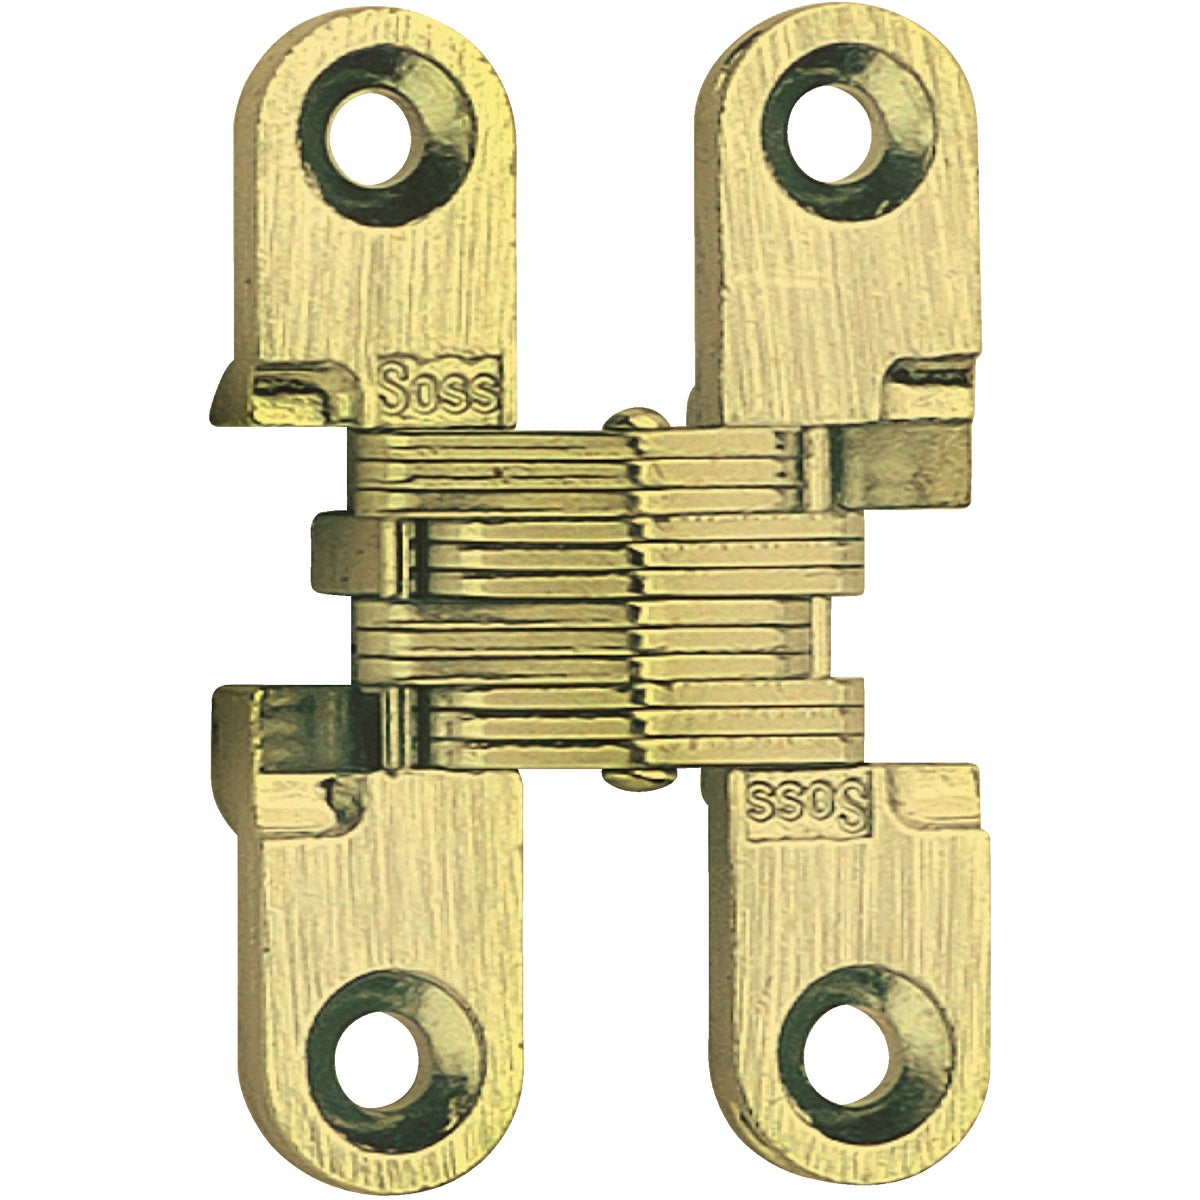 1/2X1-1/2 INVIS HINGE - 103CUS4 by Universal Ind Prod